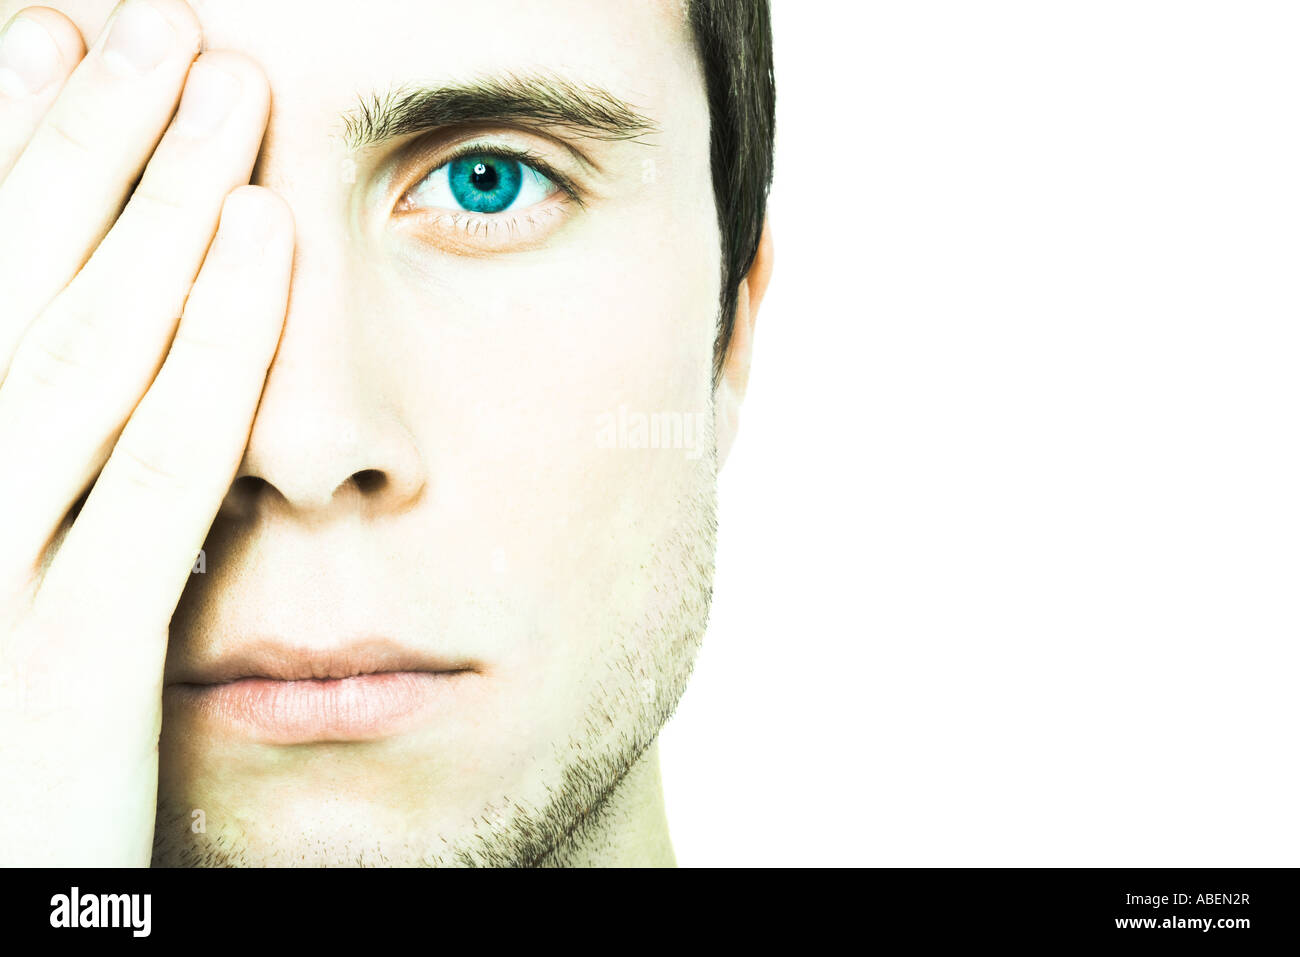 Young man covering one eye, looking at camera, extreme close-up - Stock Image